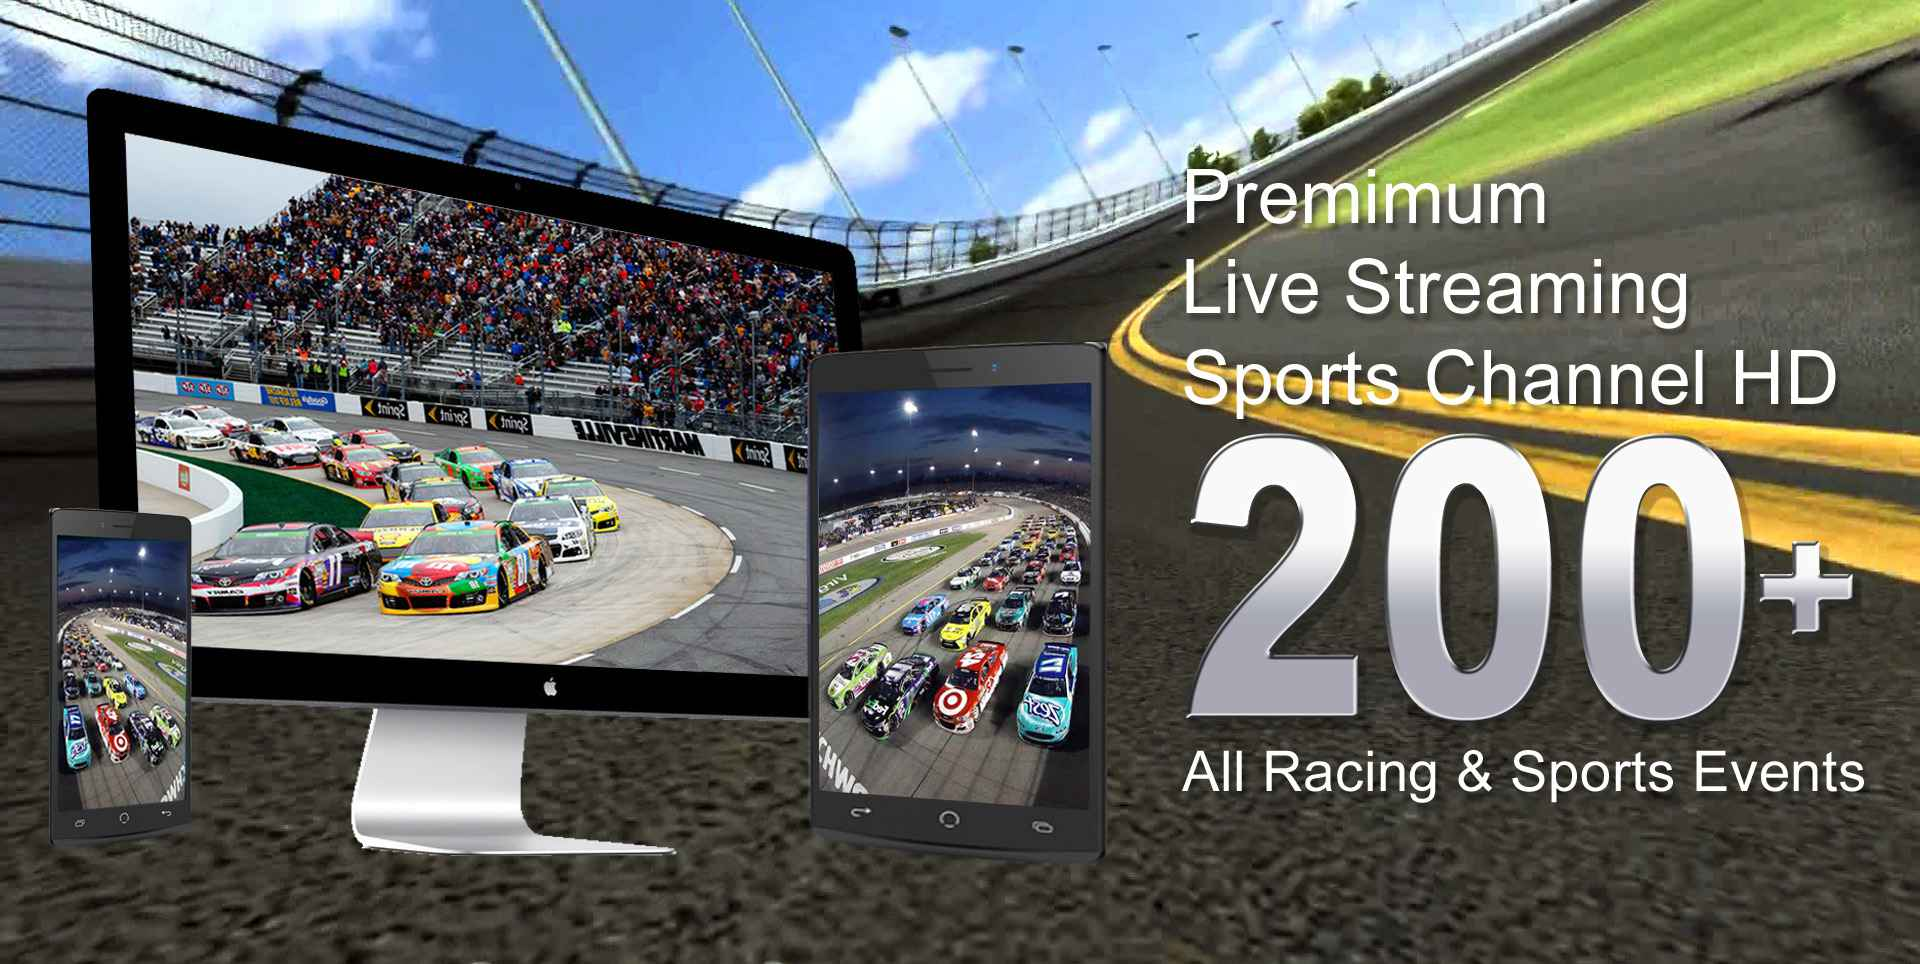 Nascar Xfinity Lilly Diabetes 250 Live